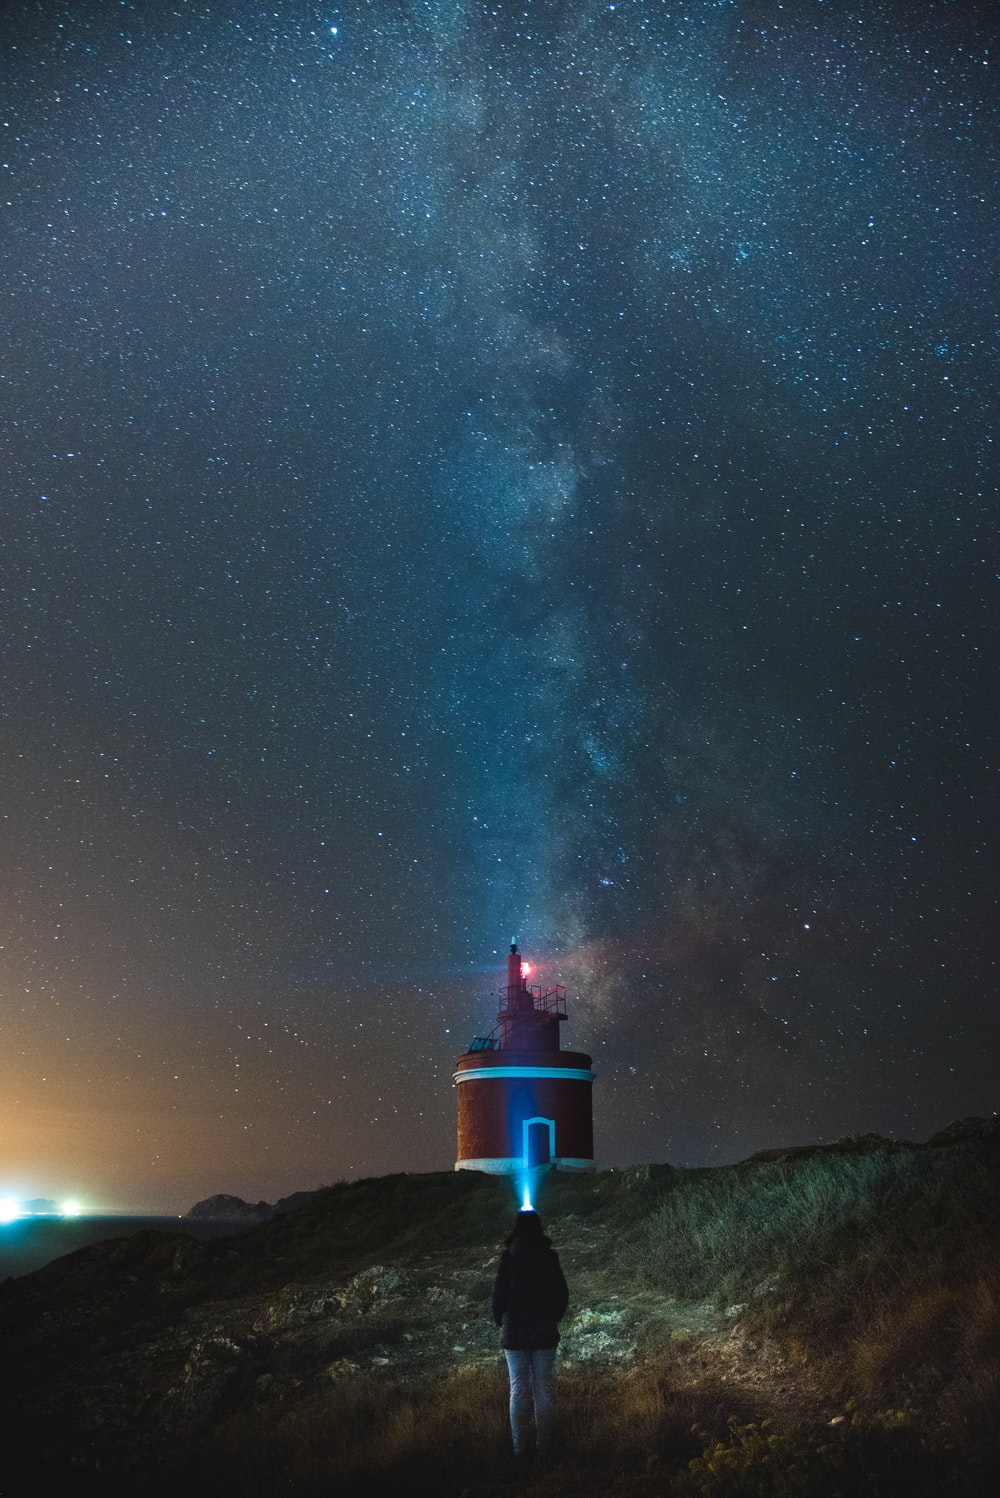 person walking towards red and white lighthouse under starry sky